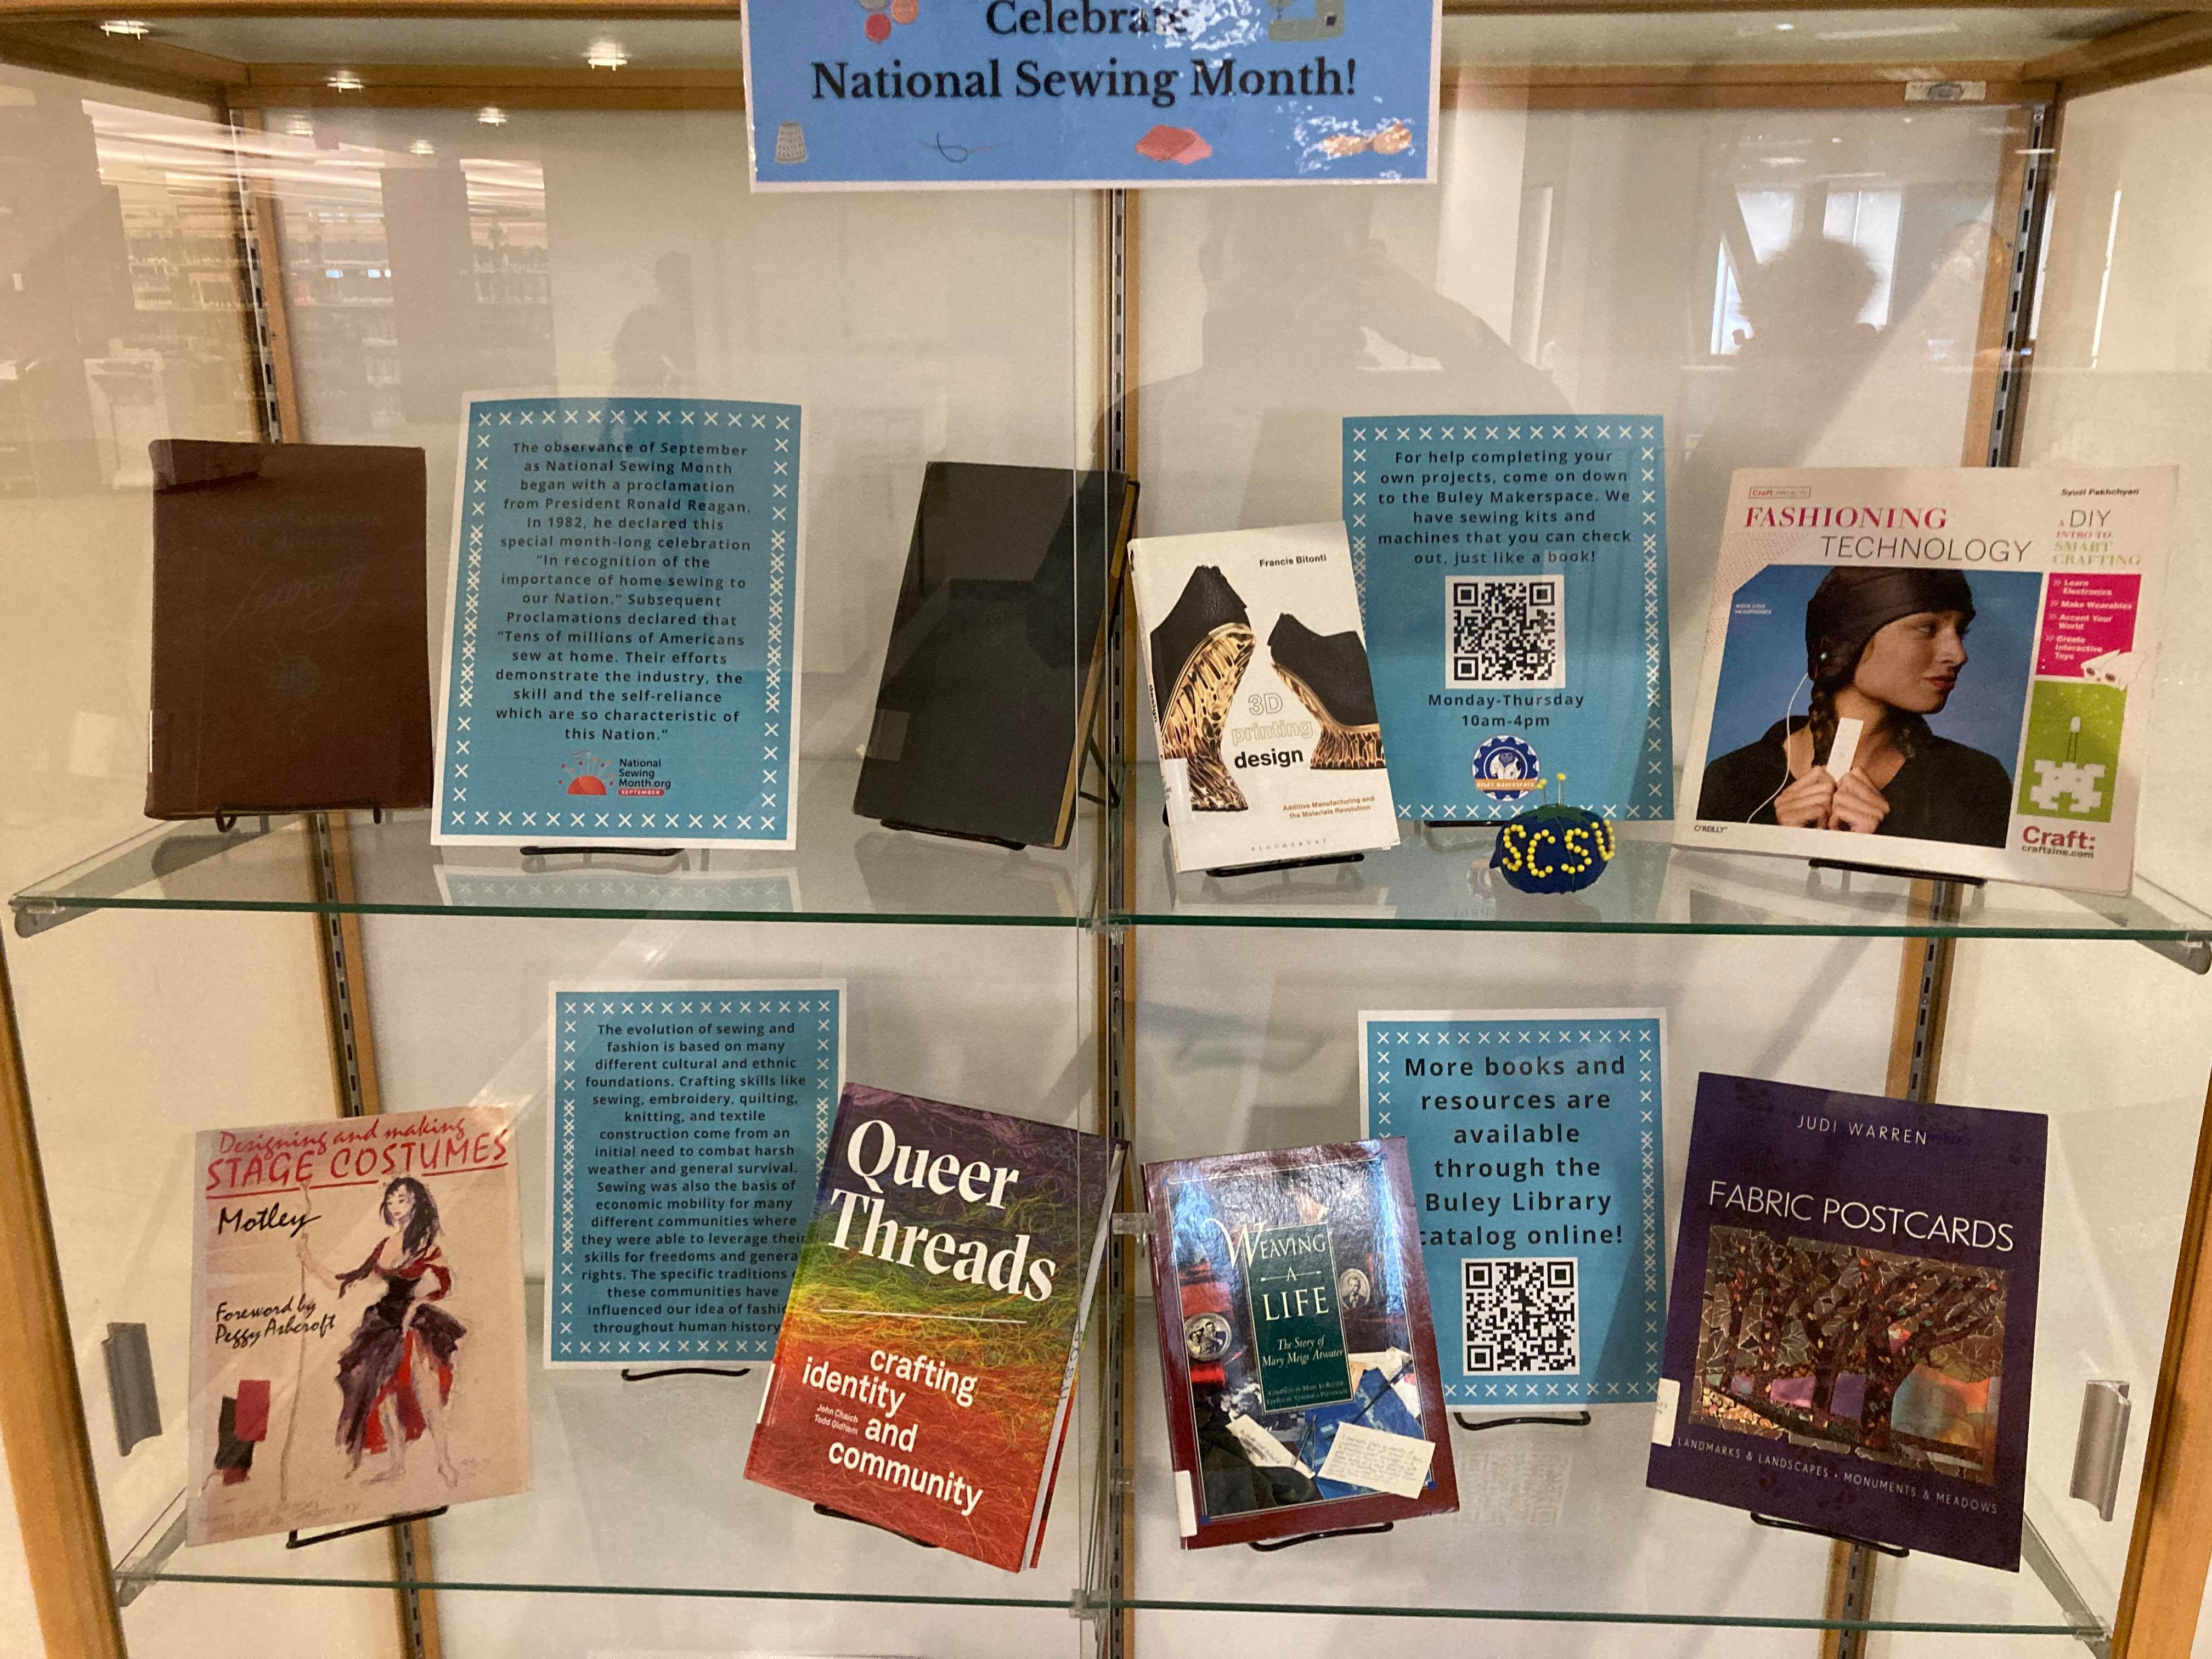 Close up of exhibit case with books on sewing and fashion